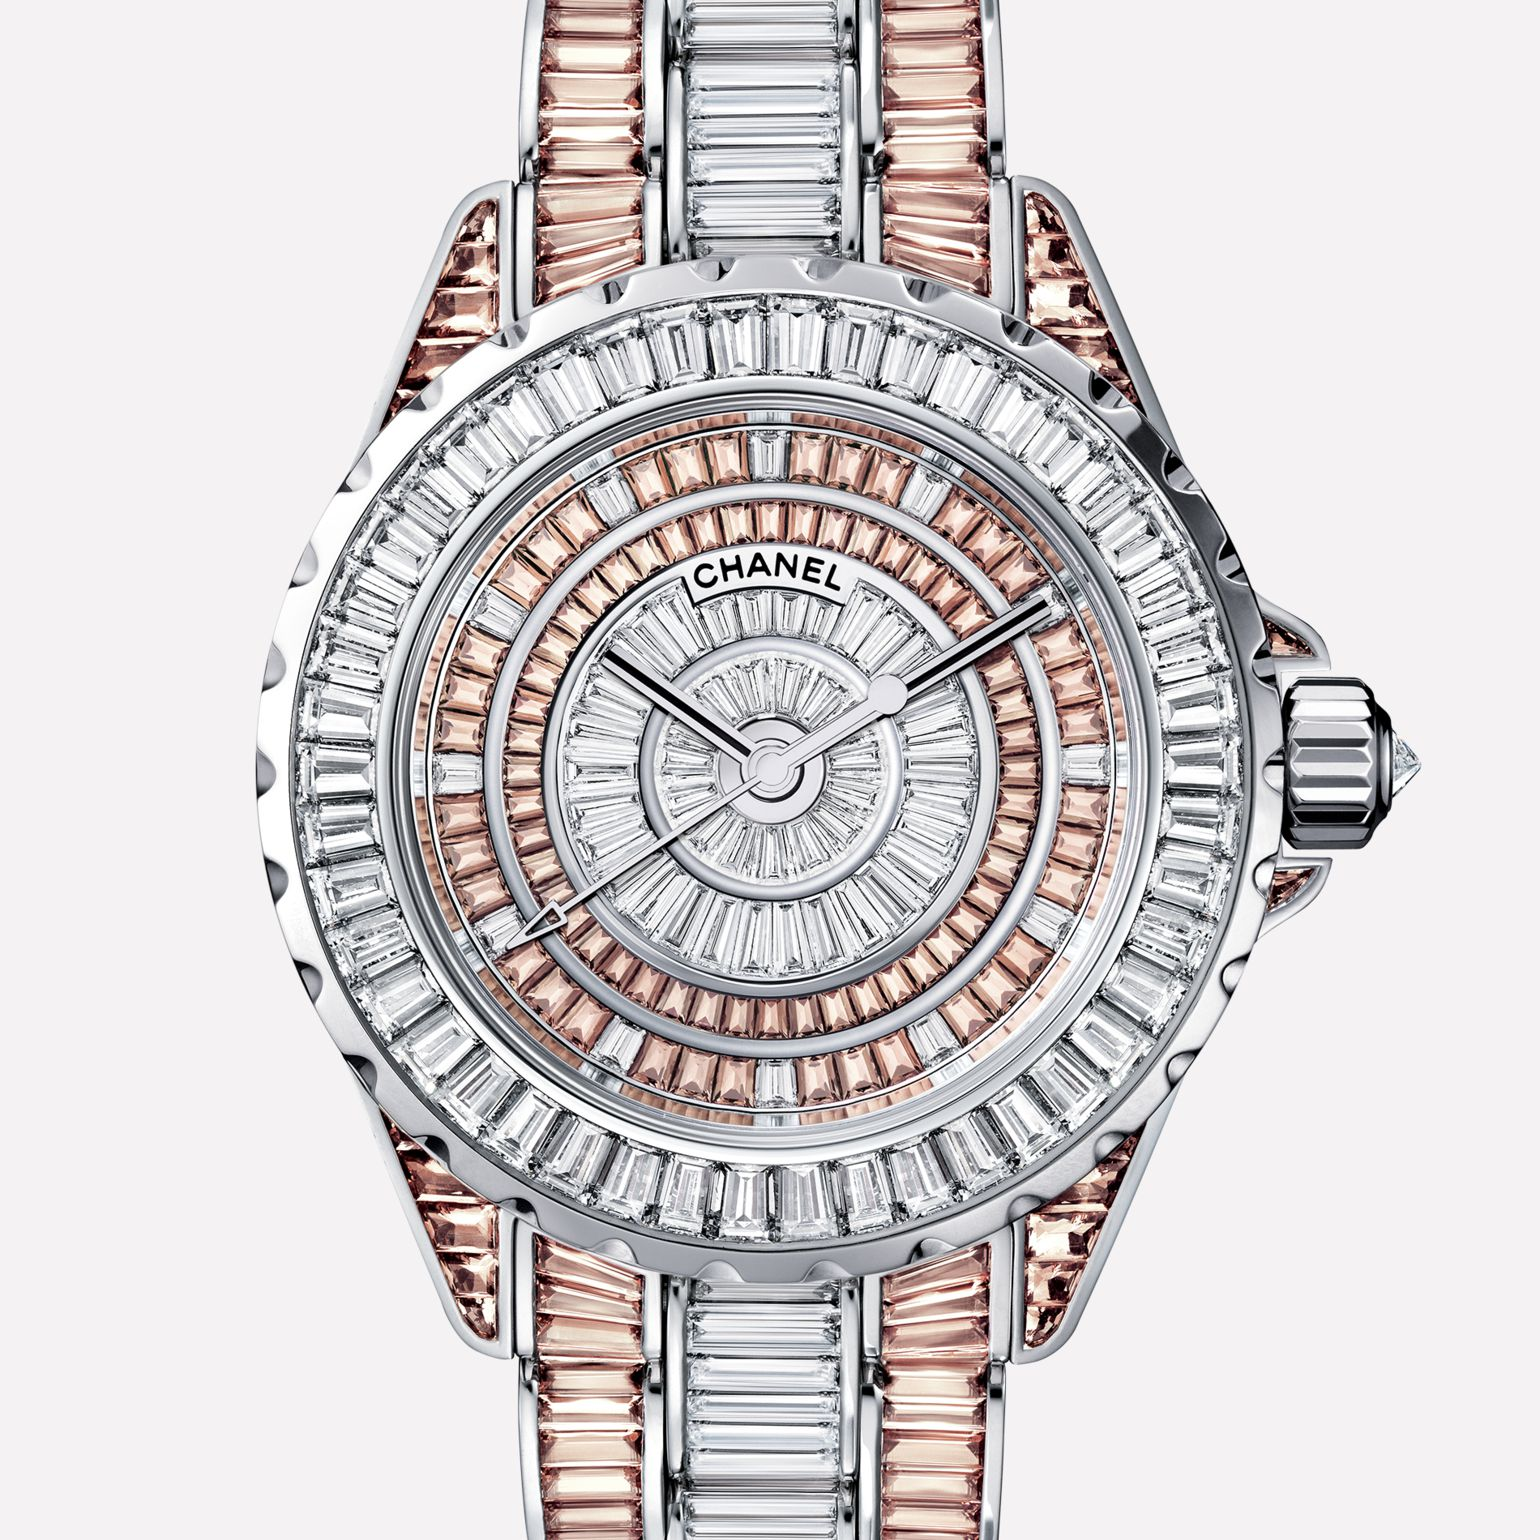 J12 High Jewelry Watch White gold, case, dial, bezel, and bracelet set with baguette-cut diamonds and cognac sapphires